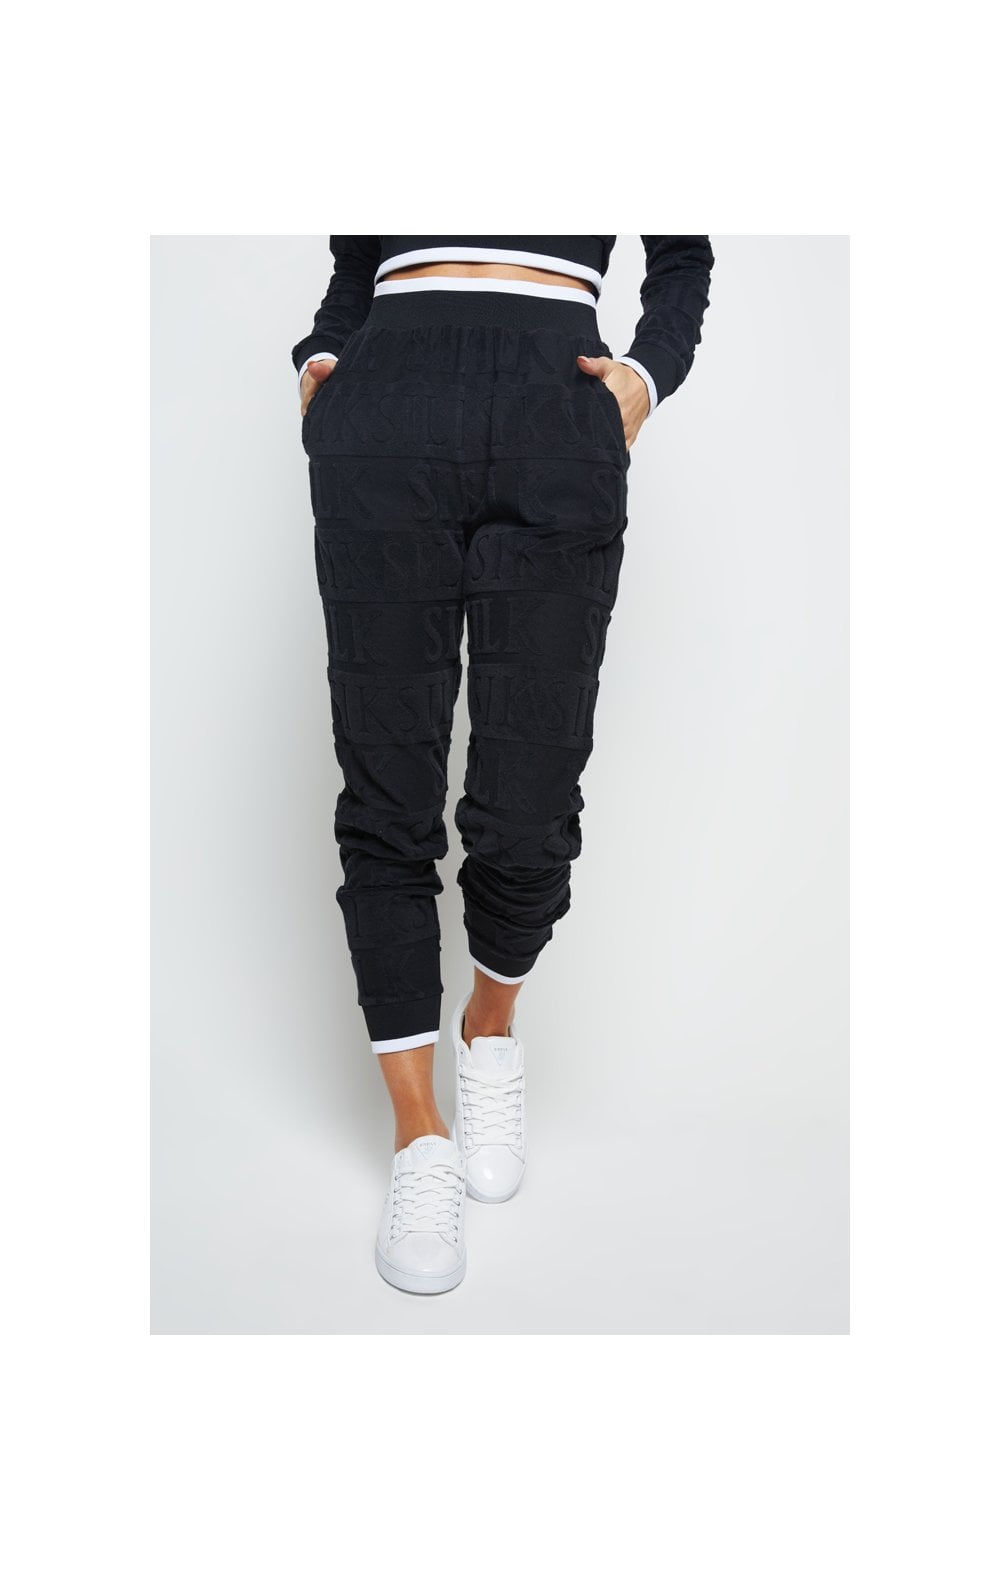 Load image into Gallery viewer, SikSilk Inverse Track Pants - Black (1)